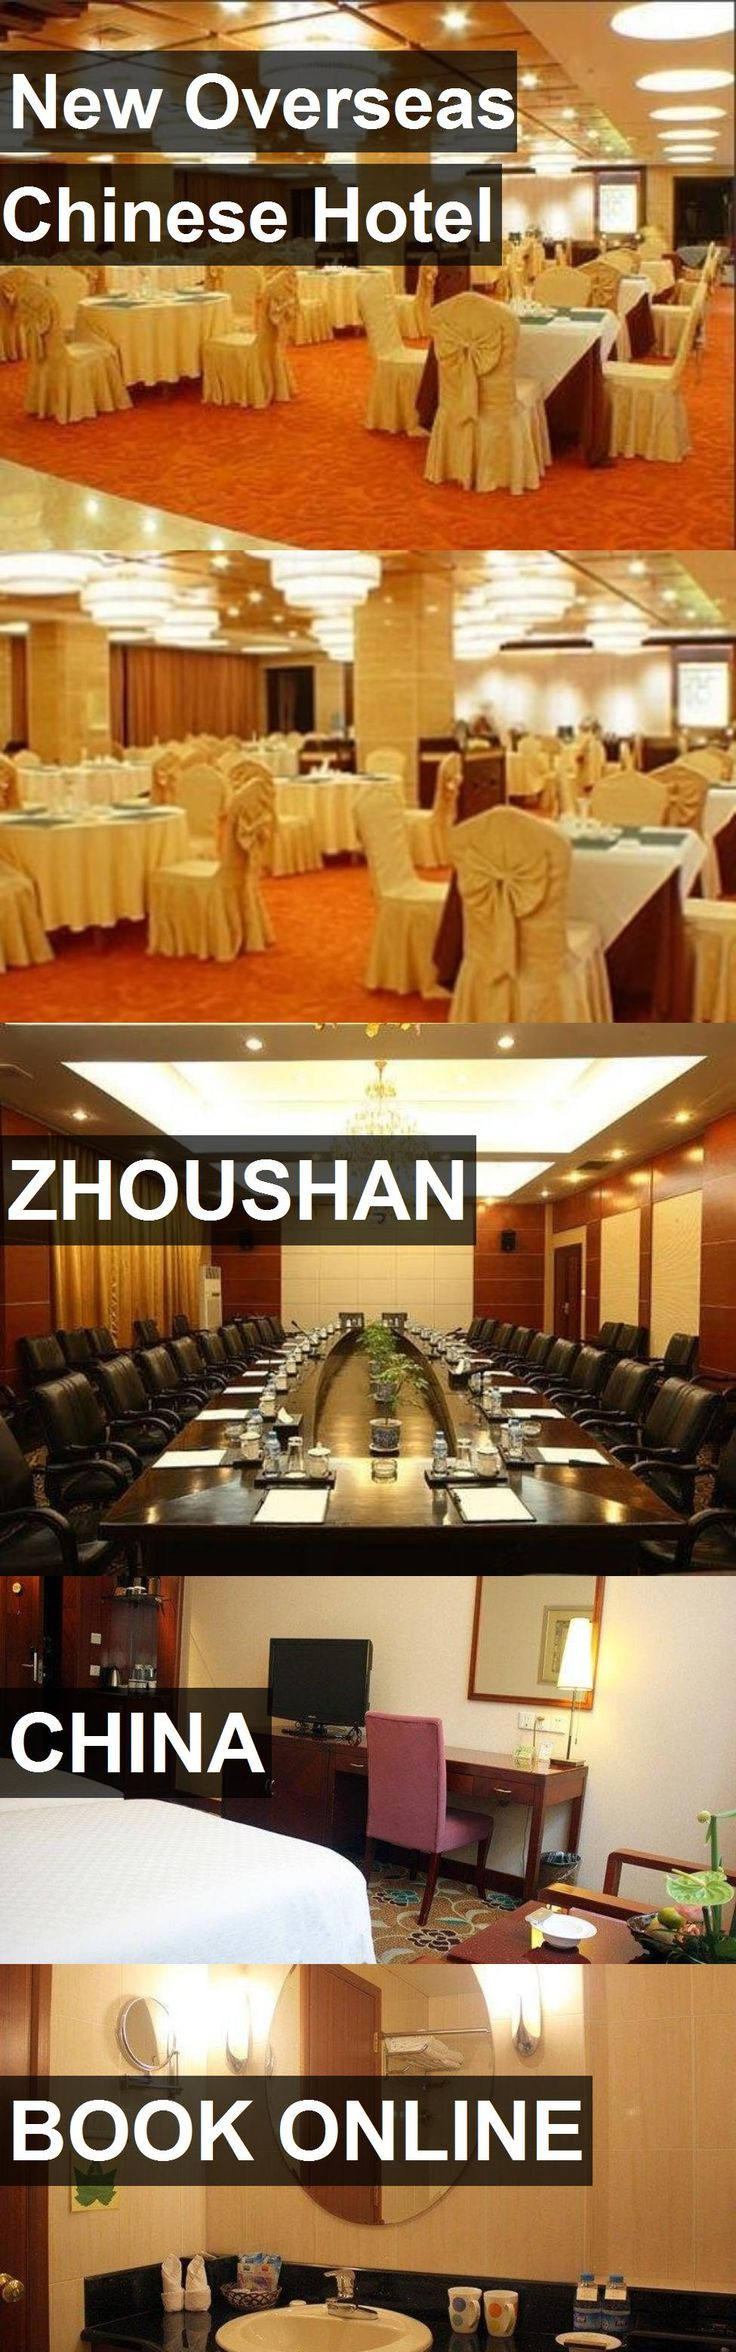 New Overseas Chinese Hotel in Zhoushan, China. For more information, photos, reviews and best prices please follow the link. #China #Zhoushan #travel #vacation #hotel